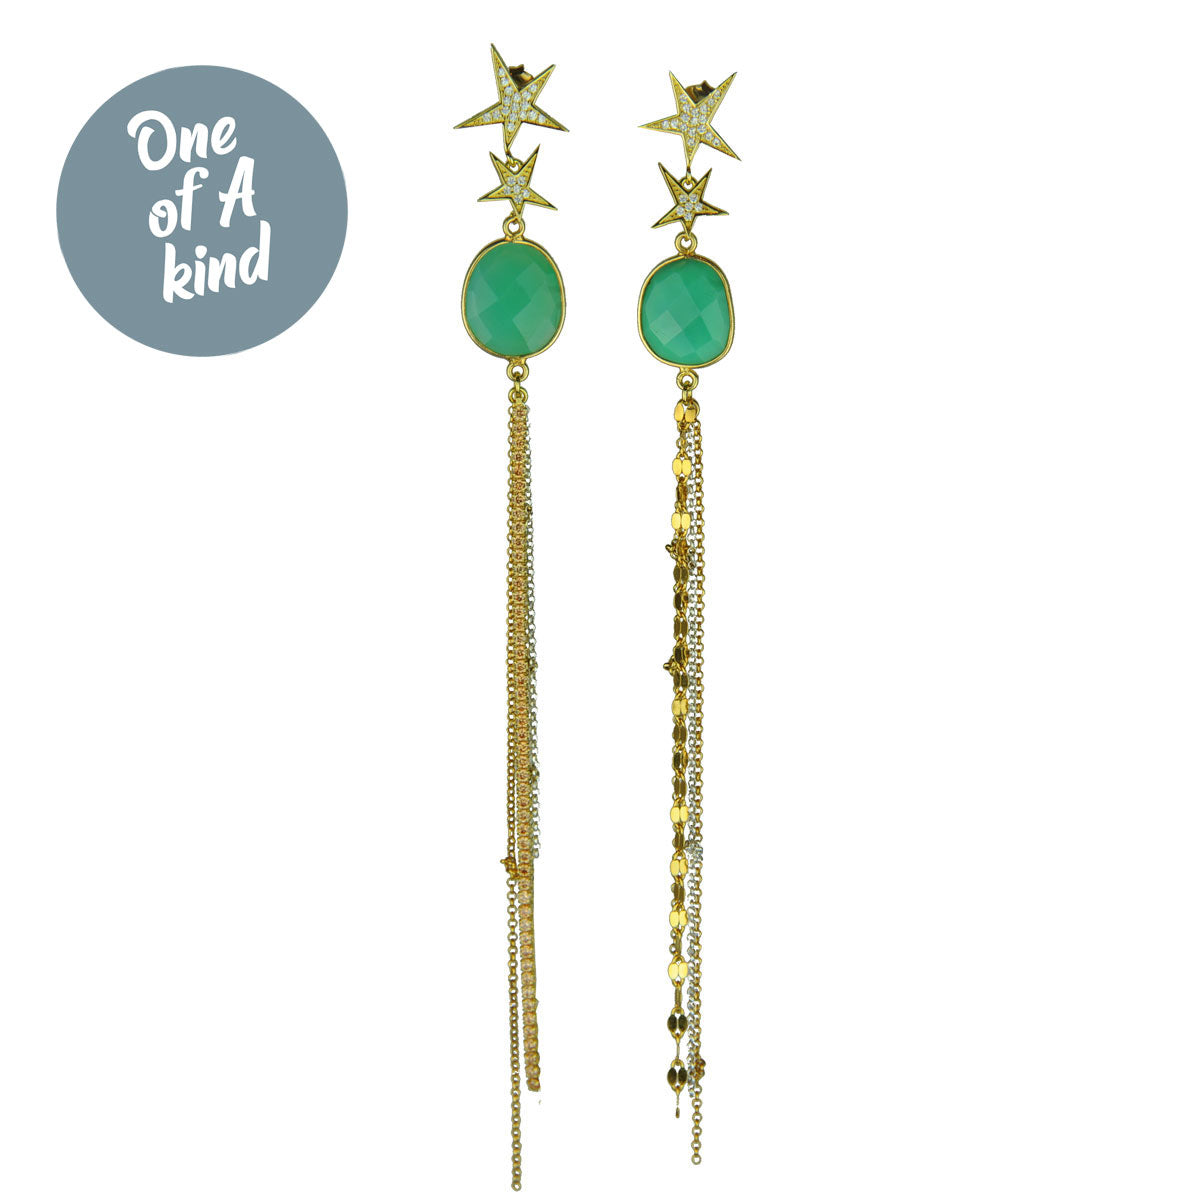 Dangle earrings with chains crystals and chrysoprase